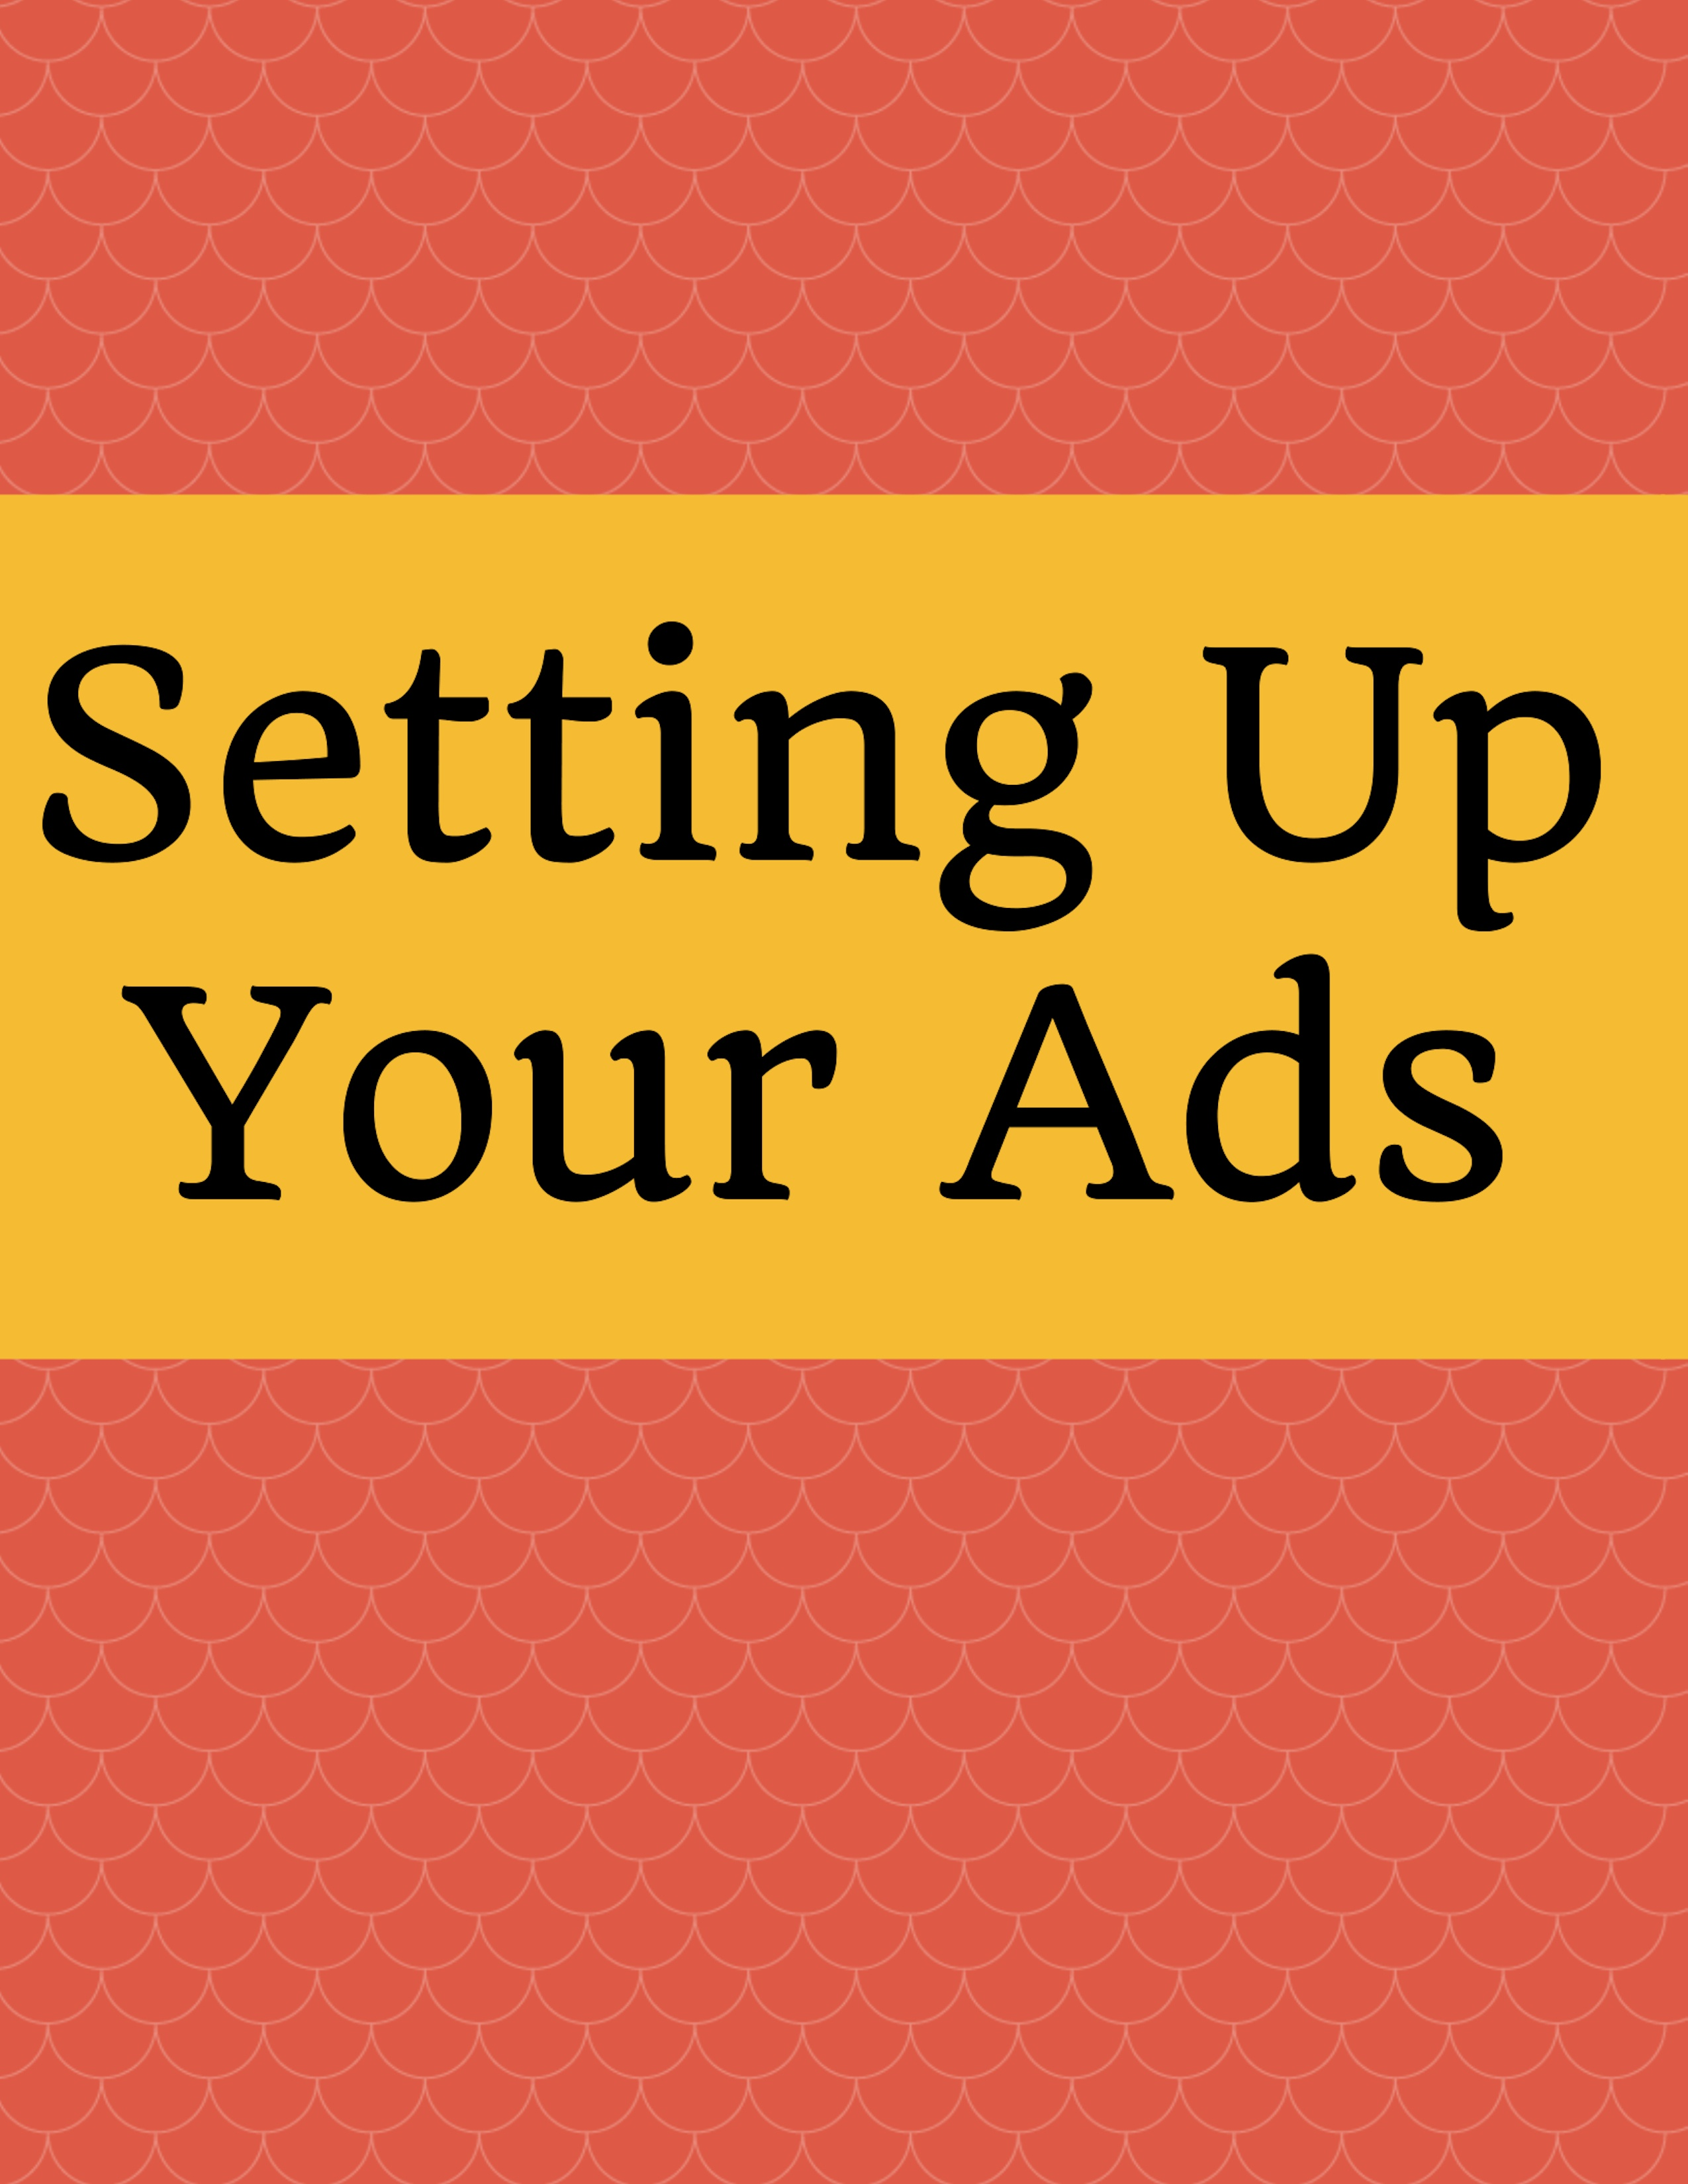 Setting-up-your-ads